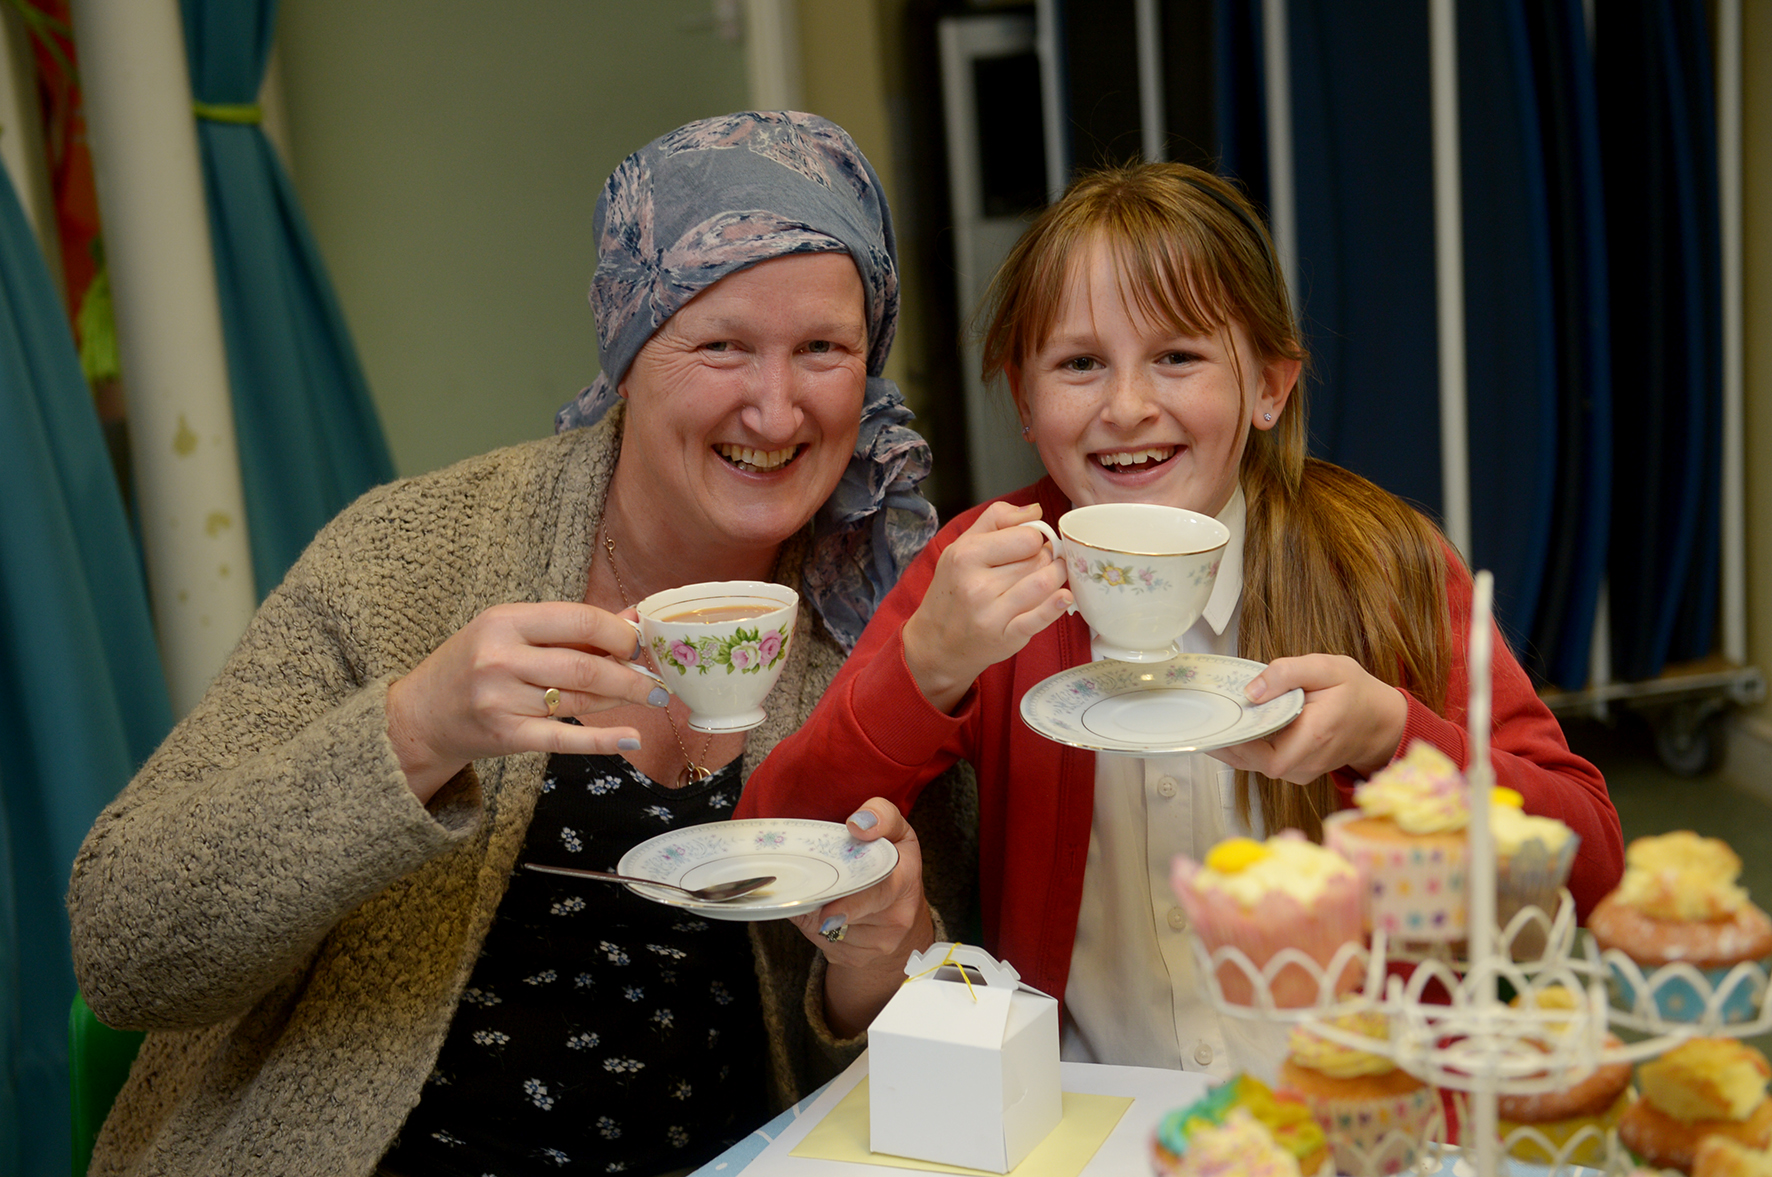 Helen and Natalie Pepper enjoy a tea party at Colne Engaine Primary School